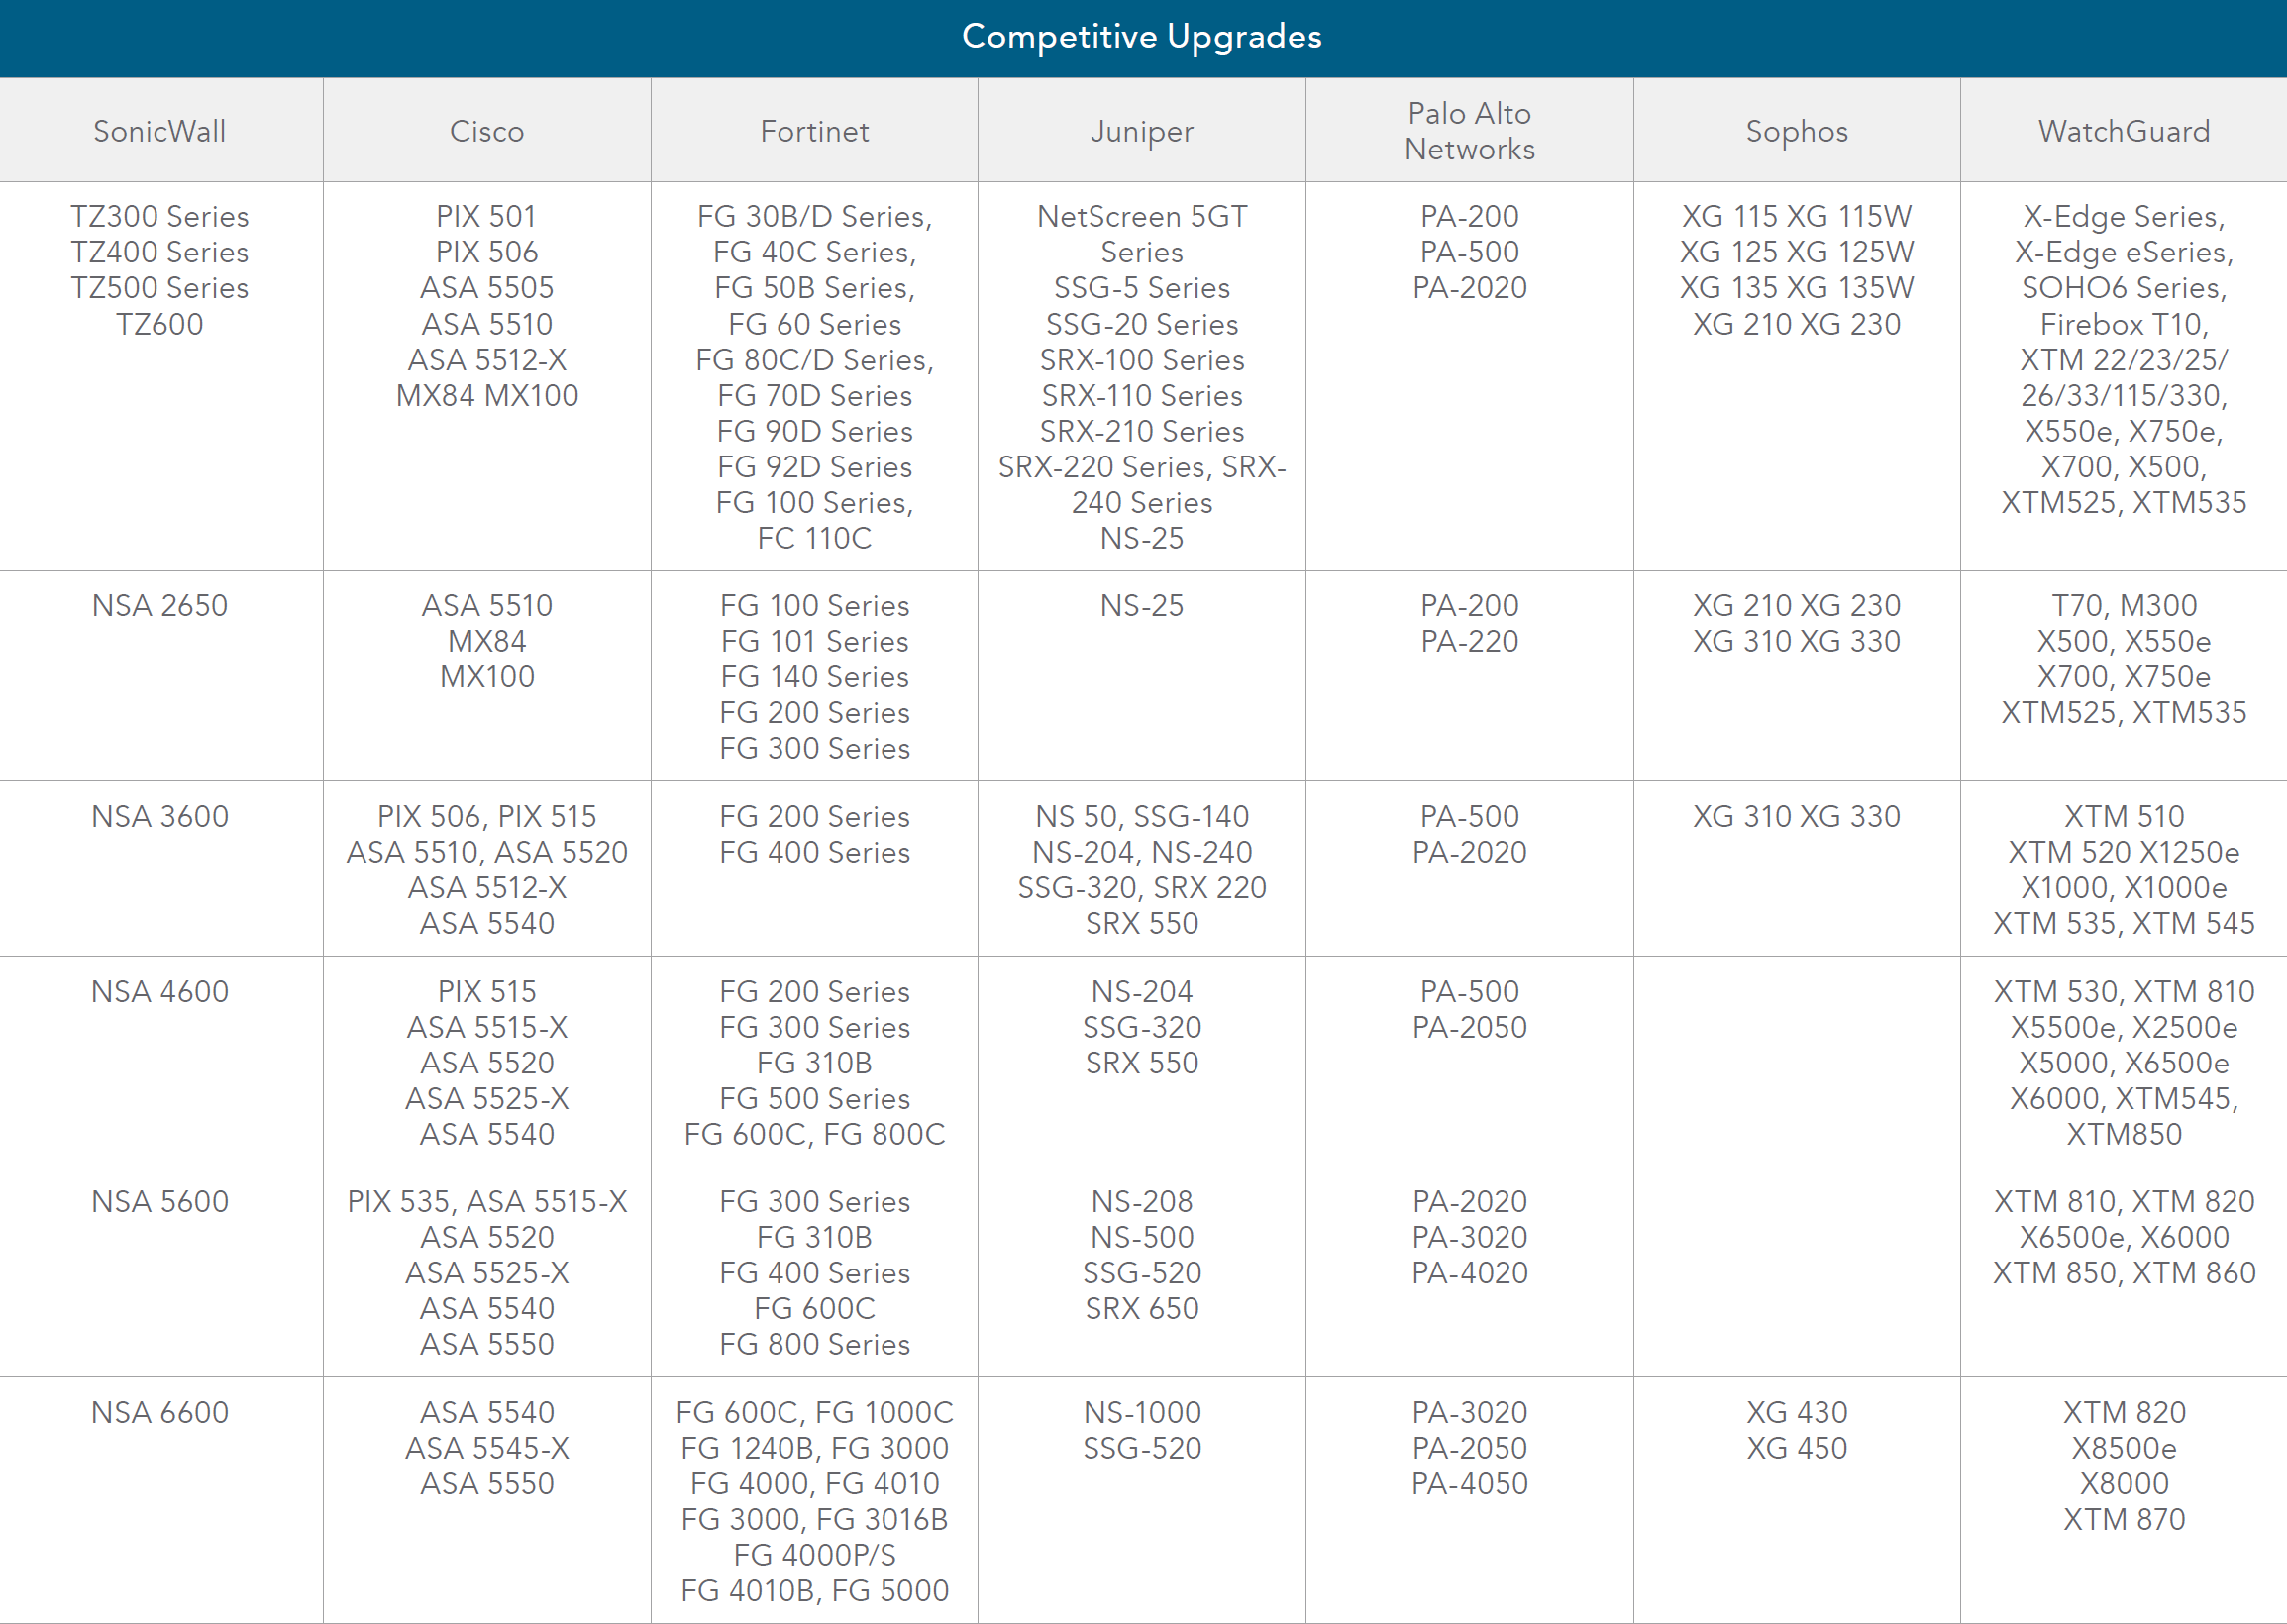 SonicWall Table of Competitive Upgrades